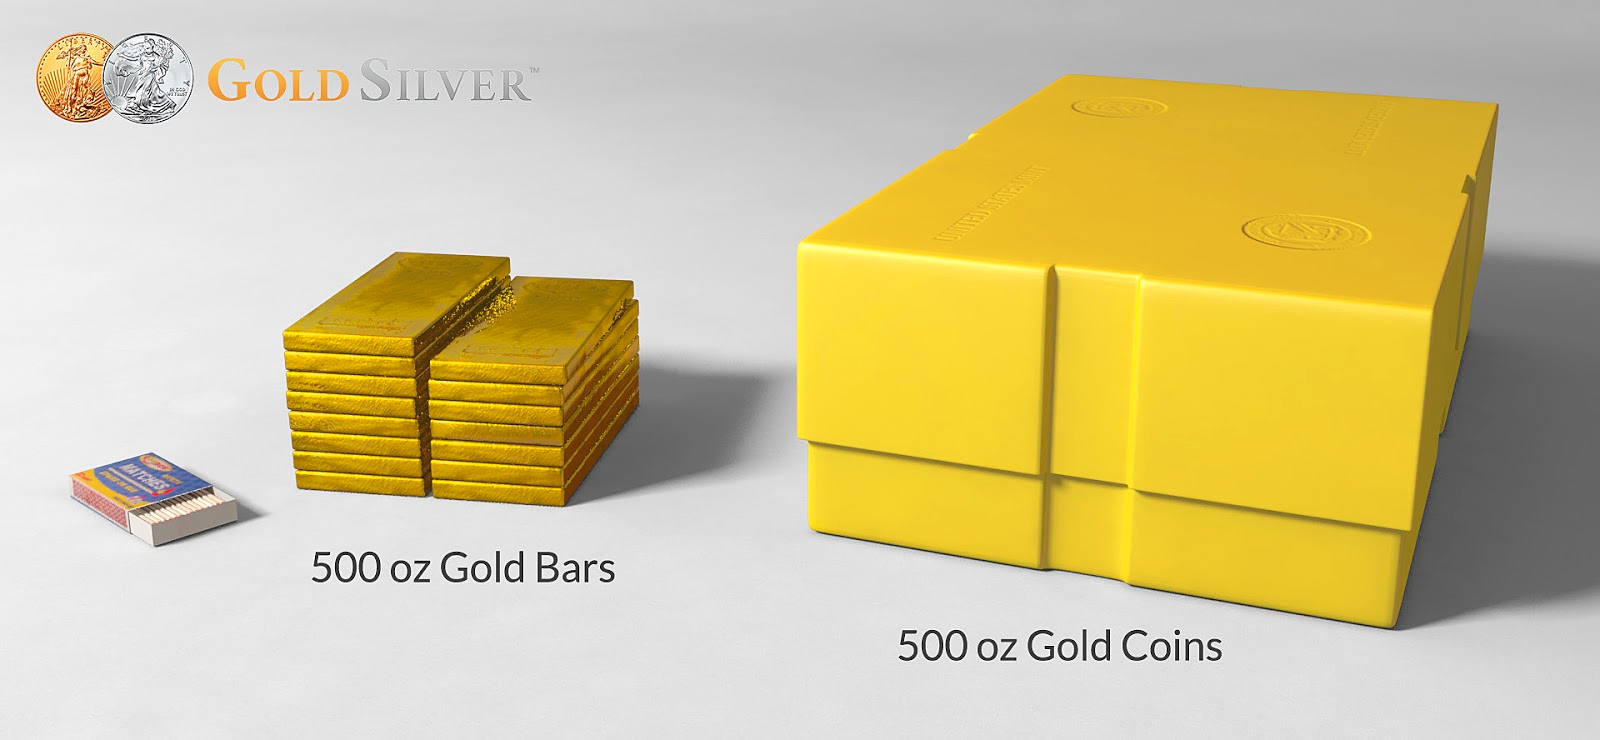 storage volume for gold bars vs gold coins